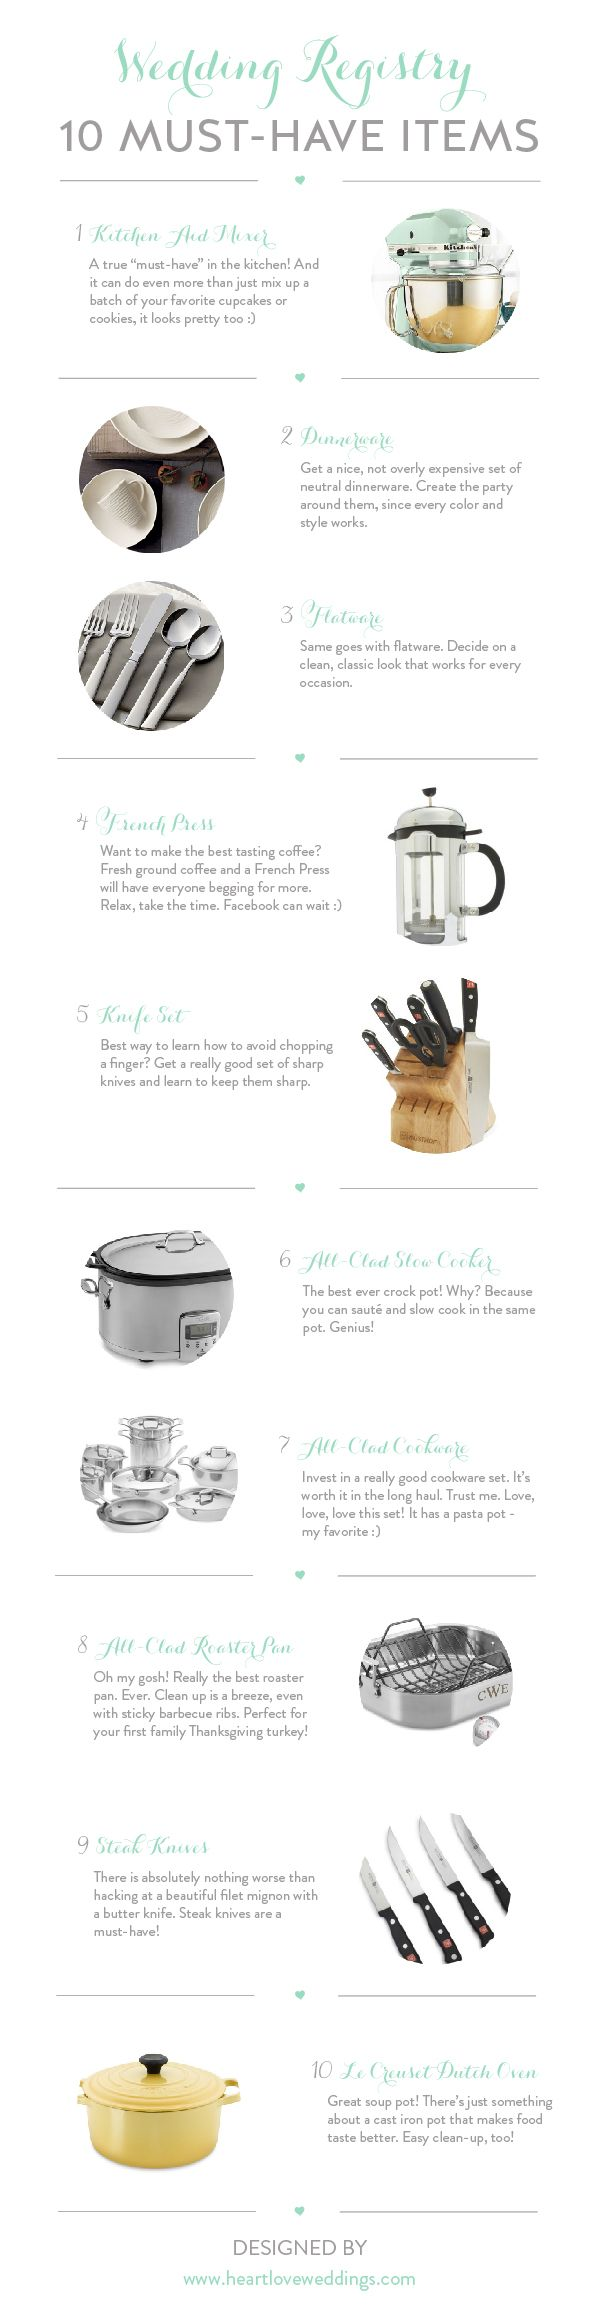 wedding registry, 10 must have wedding registry items, gift registry, wedding gift ideas